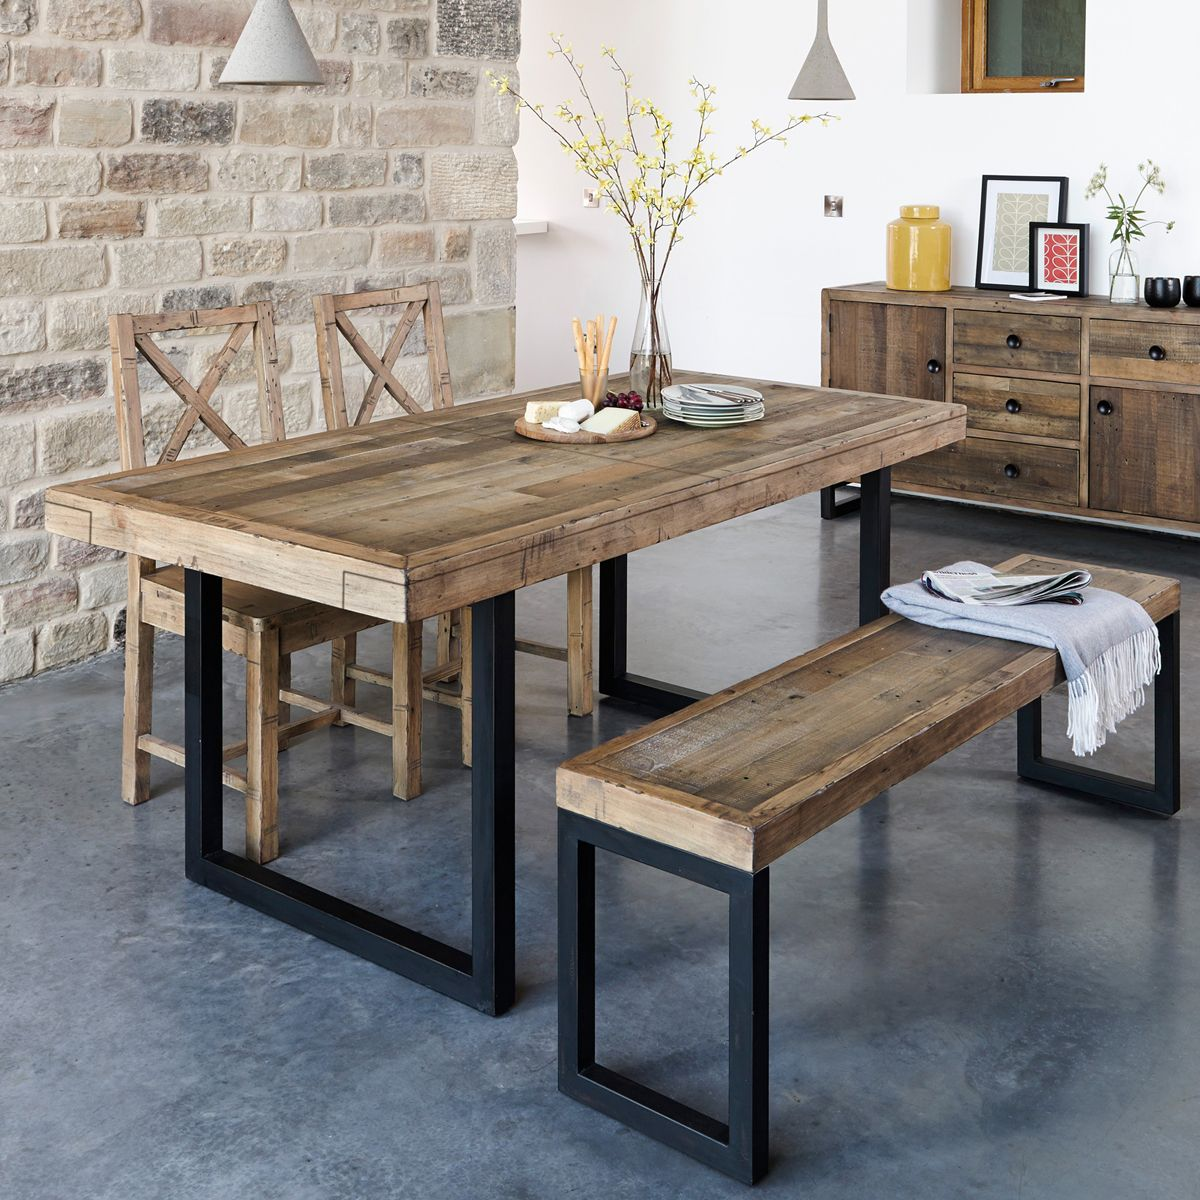 Table A Manger Extensible Bois Recycle 140 180 Brisbane Tables A Manger Pier Import Salle A Manger Bois Table Salle A Manger Table A Manger Extensible